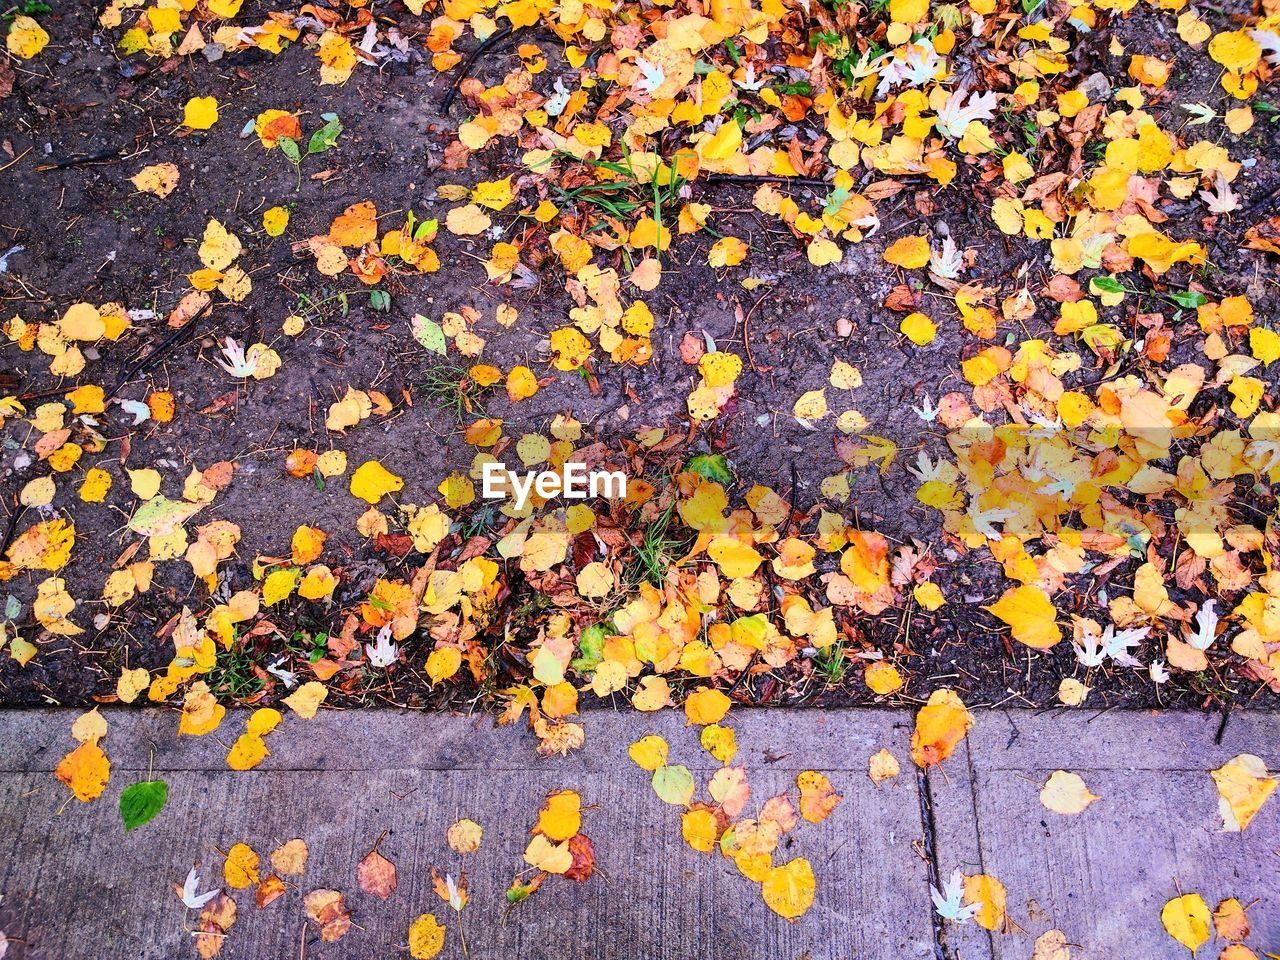 Close-Up Of Autumn Leaves Fallen On Street